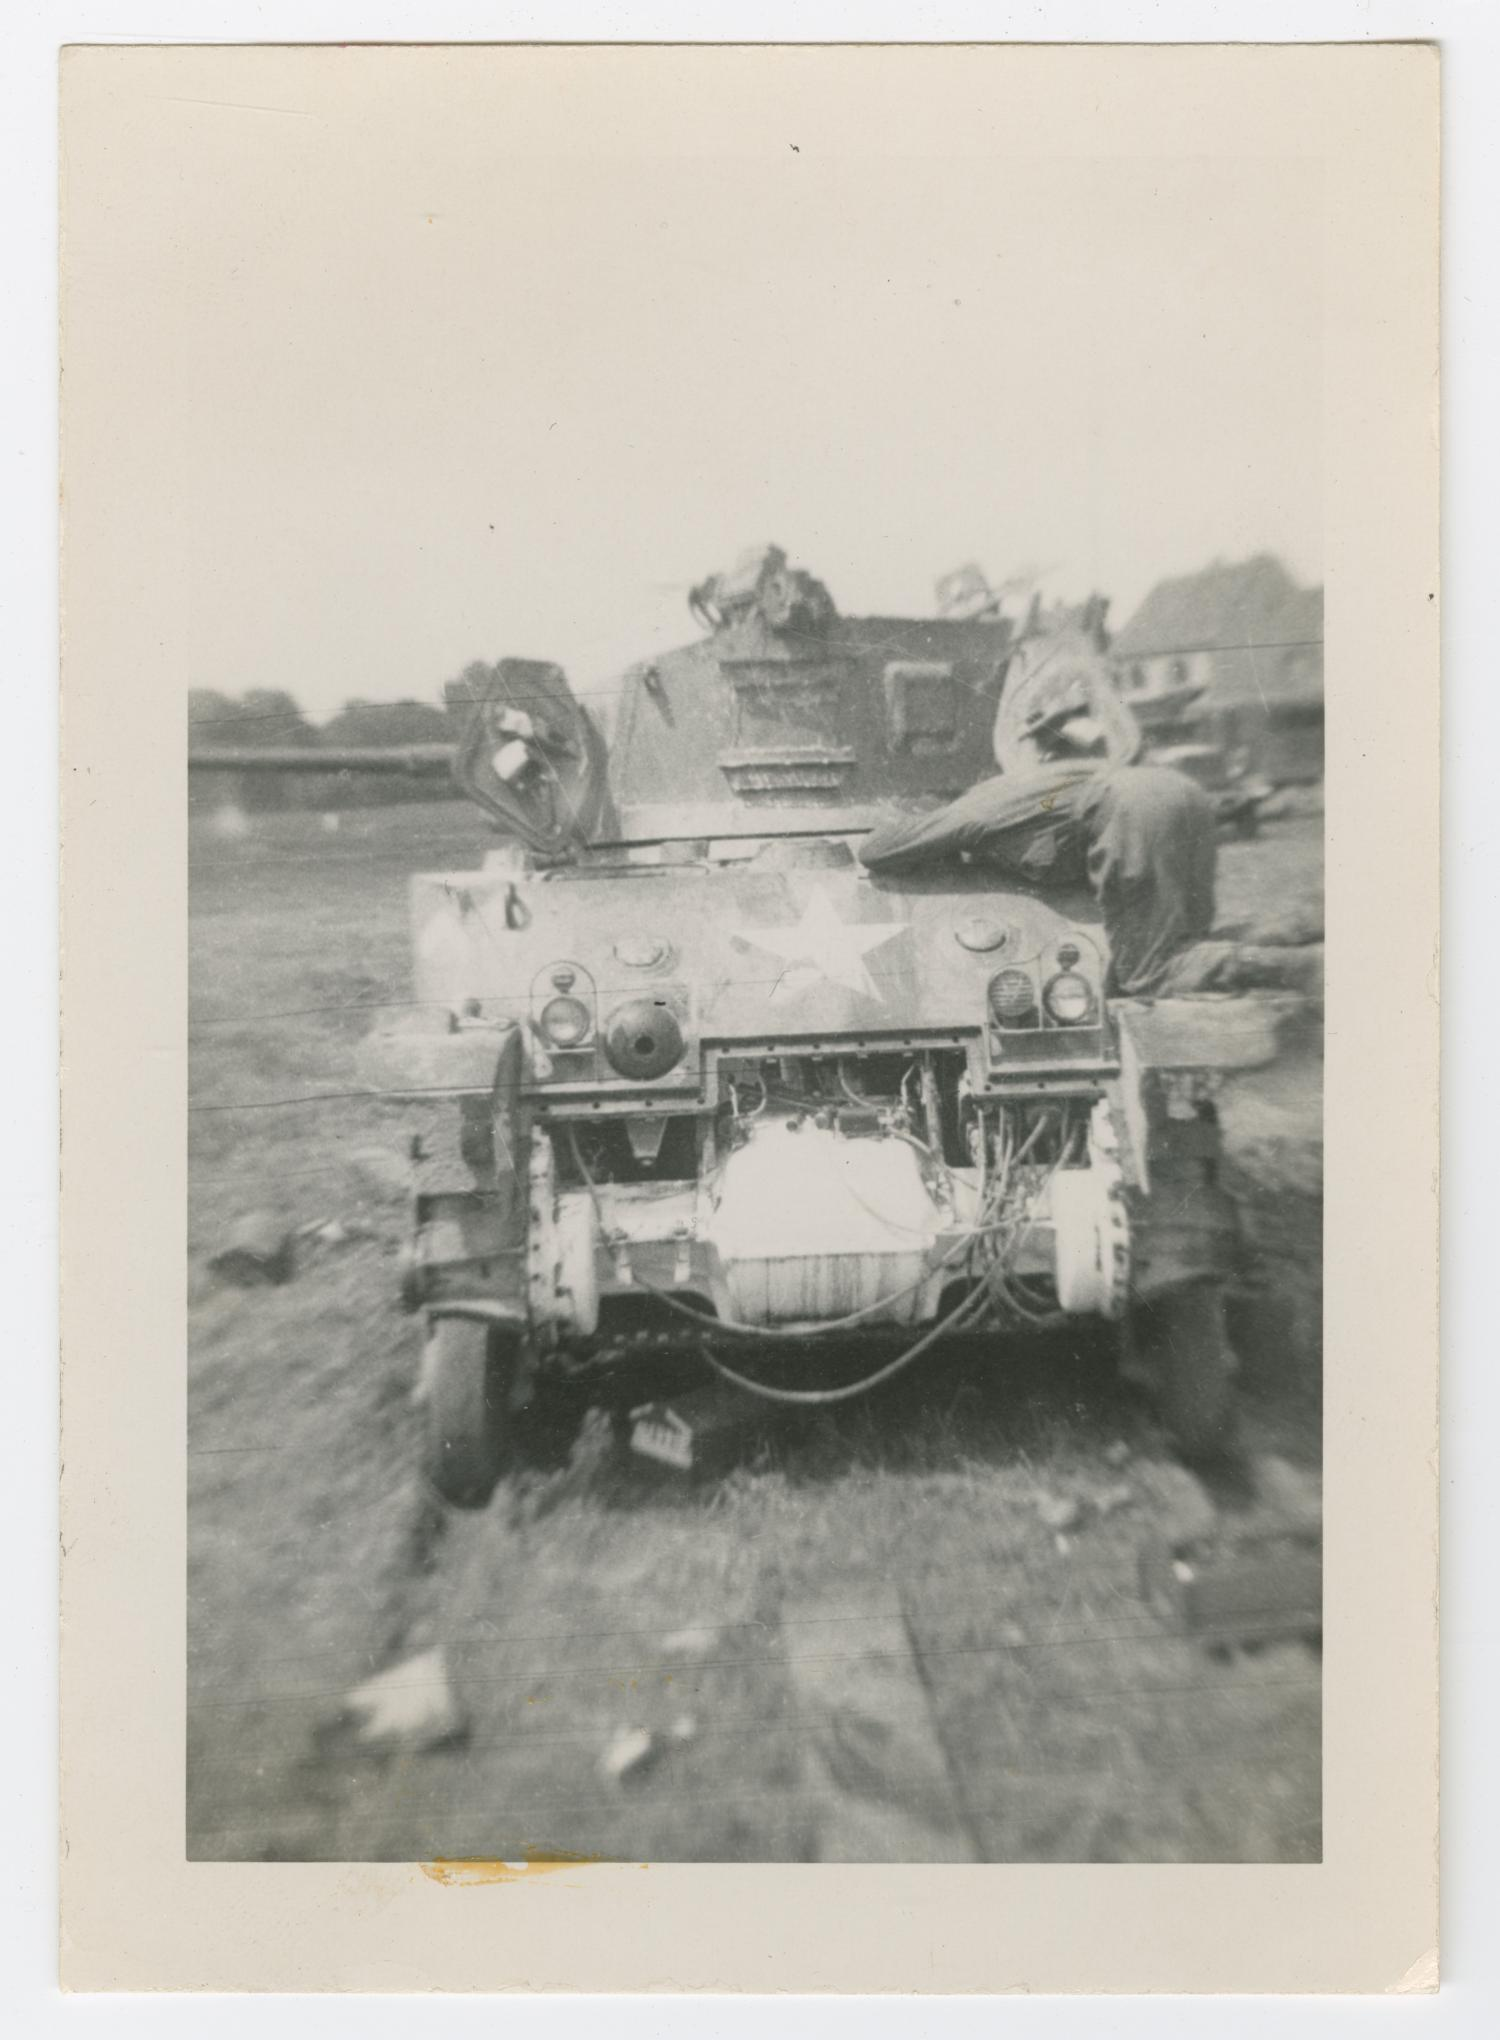 [Soldier Repairing an M5 Tank]                                                                                                      [Sequence #]: 1 of 2